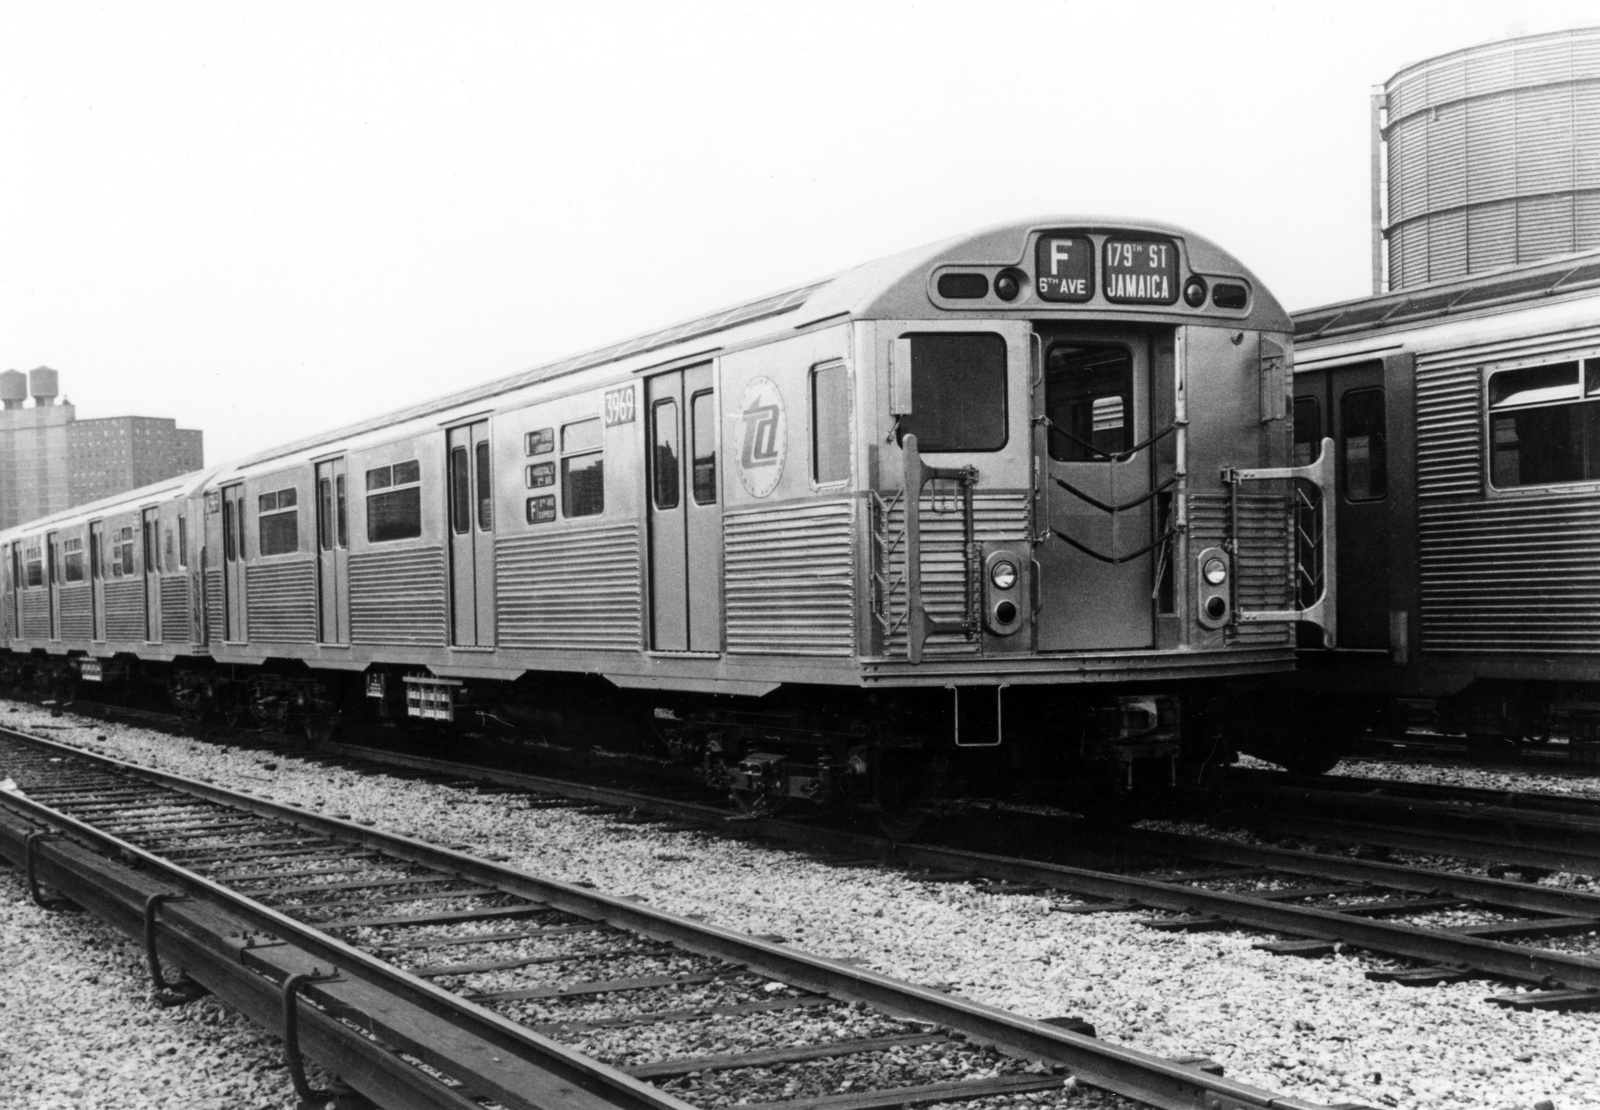 (273k, 1024x812)<br><b>Country:</b> United States<br><b>City:</b> New York<br><b>System:</b> New York City Transit<br><b>Location:</b> Coney Island Yard<br><b>Car:</b> R-38 (St. Louis, 1966-1967)  3969 <br><b>Photo by:</b> Ed Watson/Arthur Lonto Collection<br><b>Collection of:</b> Frank Pfuhler<br><b>Date:</b> 1966<br><b>Viewed (this week/total):</b> 5 / 457